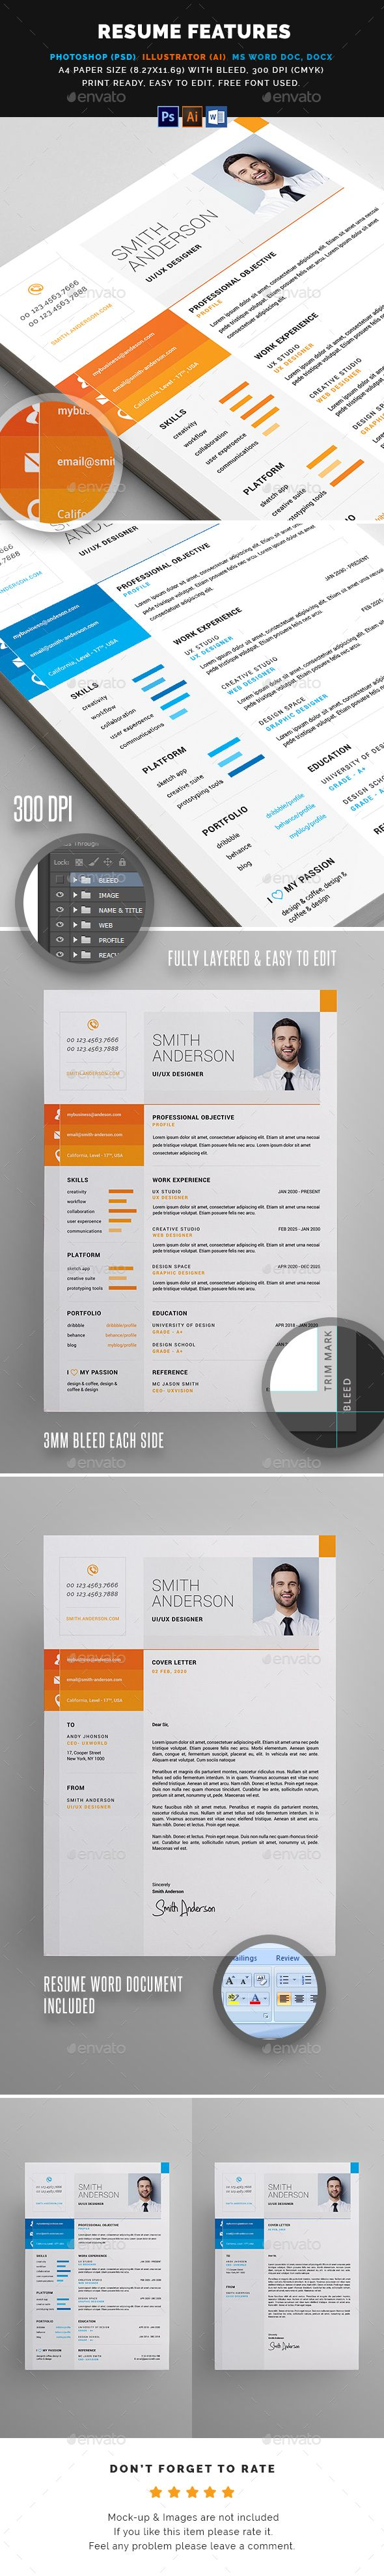 Resume FEATURES:      Easy customizable and editable     300 DPI CMYK Print Ready!     A4 size 216×303mm with Bleed     100% Layered and Full Editable     04 PSD Files included     04 Ai Files included     04 Word Files (DOC & DOCX) included     Help Guide Included     Print Ready Format     Images are not included in the download.  FONT:      Raleway     Roboto